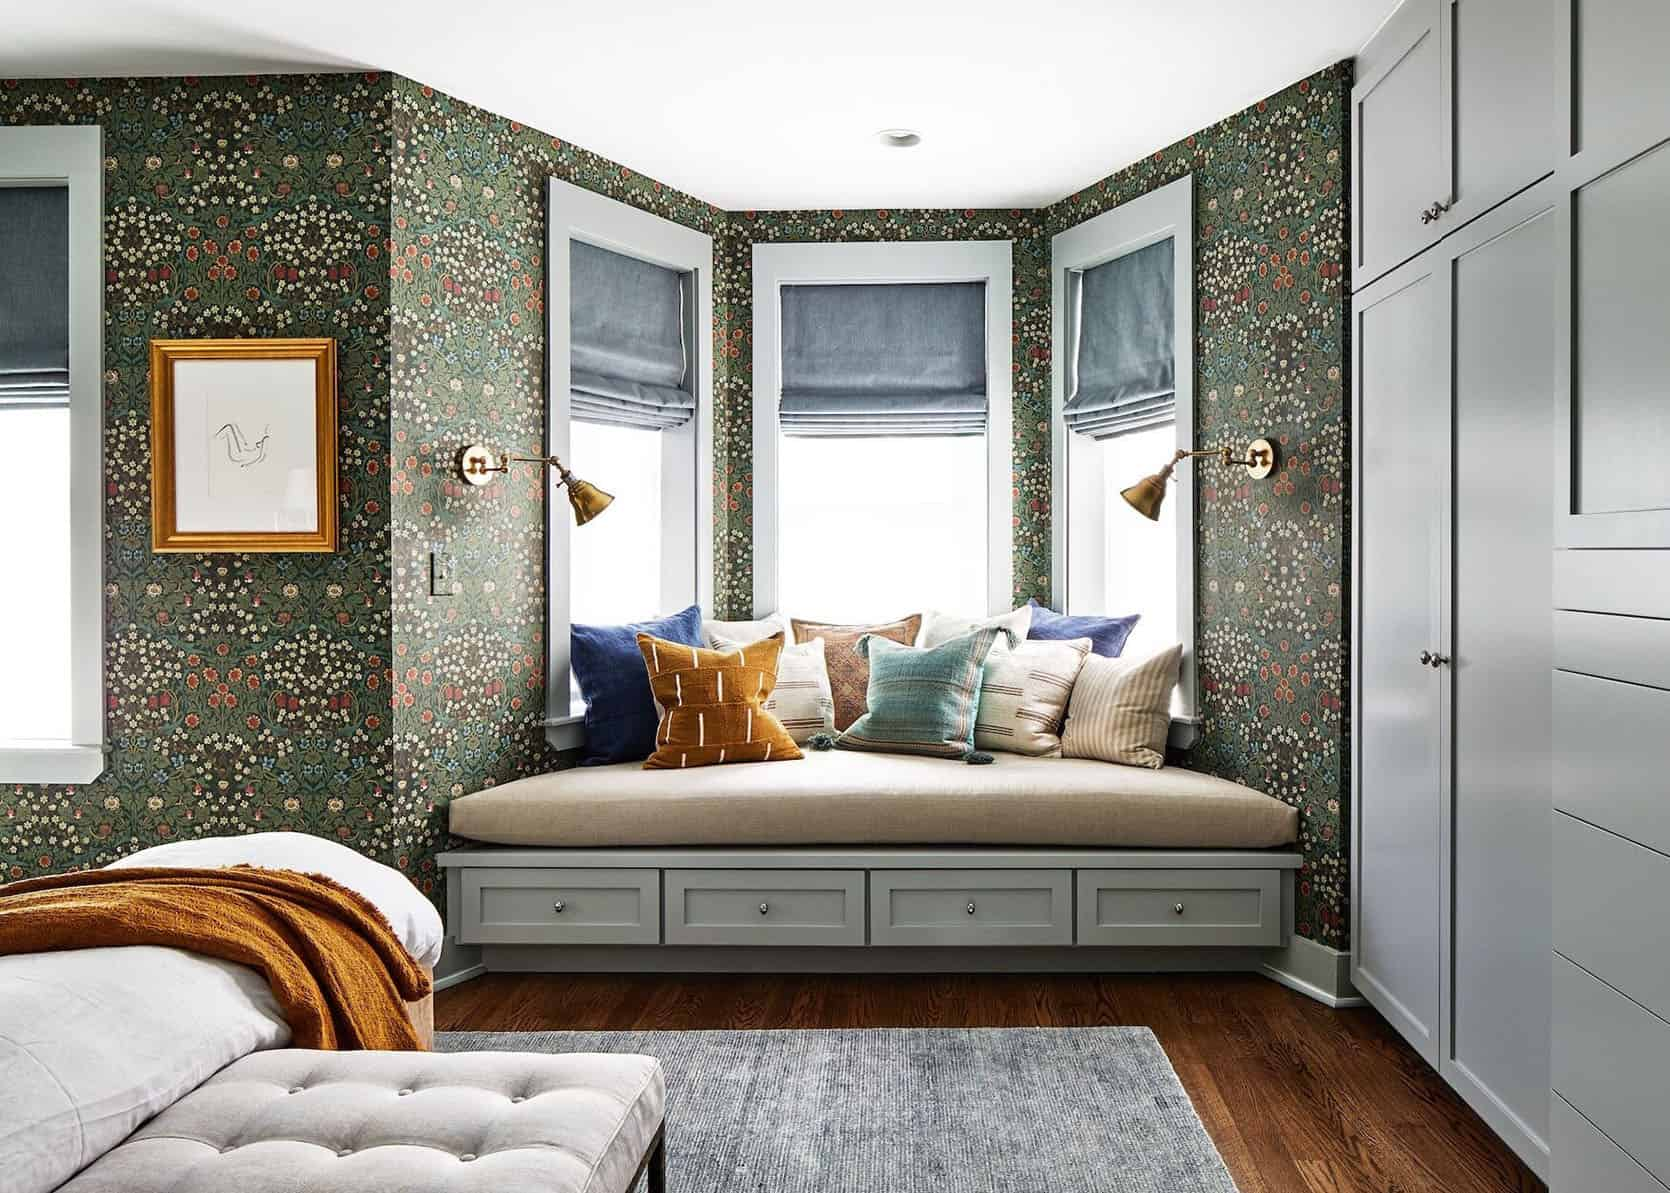 New Project Alert! Em And Key Are Designing The Main Bedroom Suite in The 2021 Real Simple Home